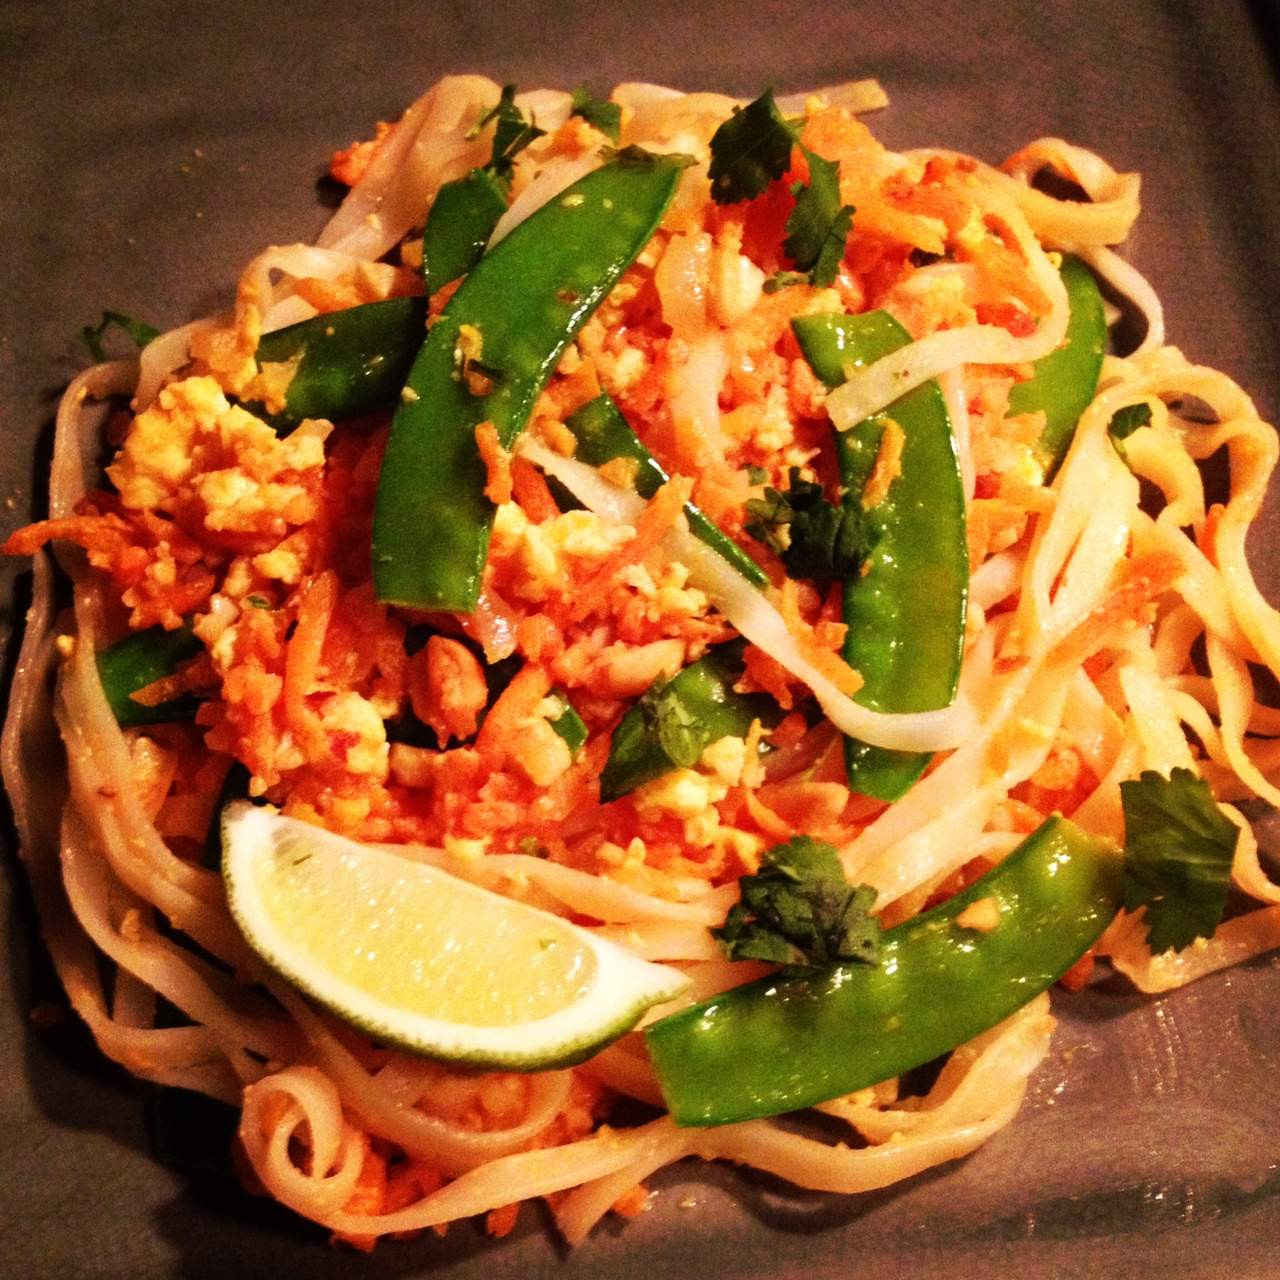 Vegan Pad Thai  Ve arian Pad Thai Dietetic Directions Dietitian and